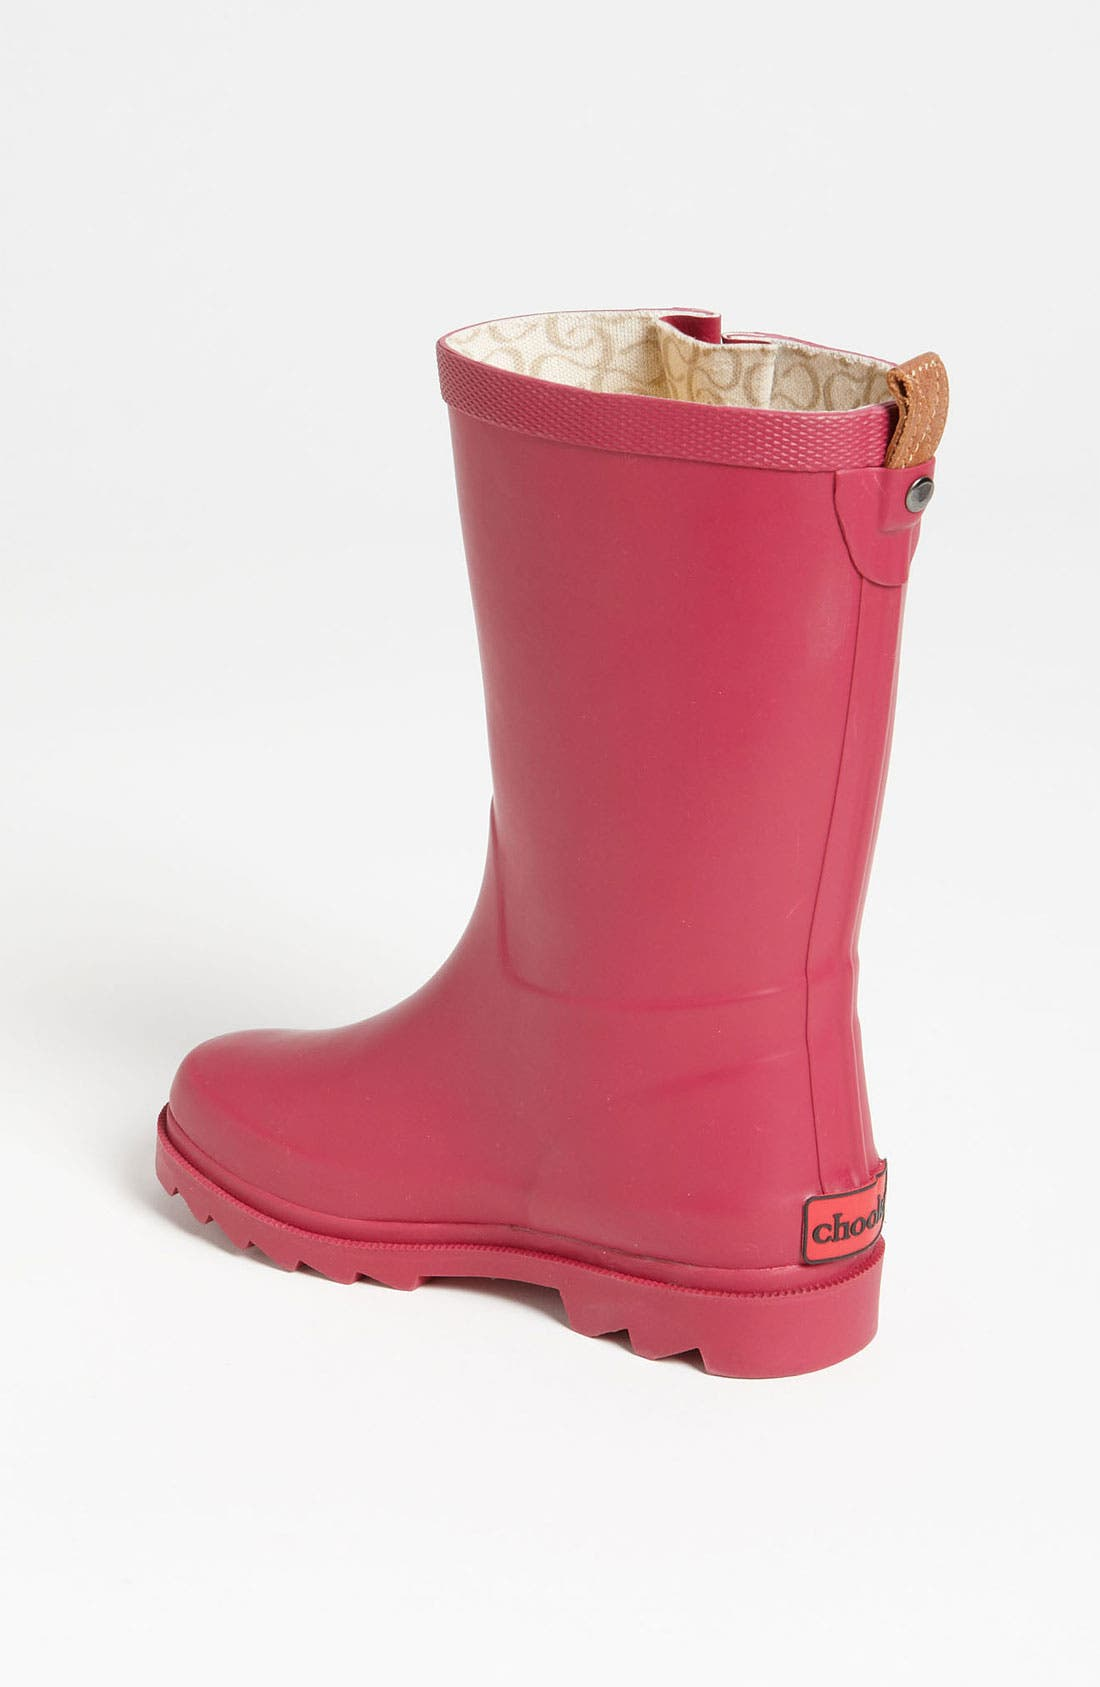 Alternate Image 2  - Chooka Rubber Rain Boot (Toddler, Little Kid & Big Kid)